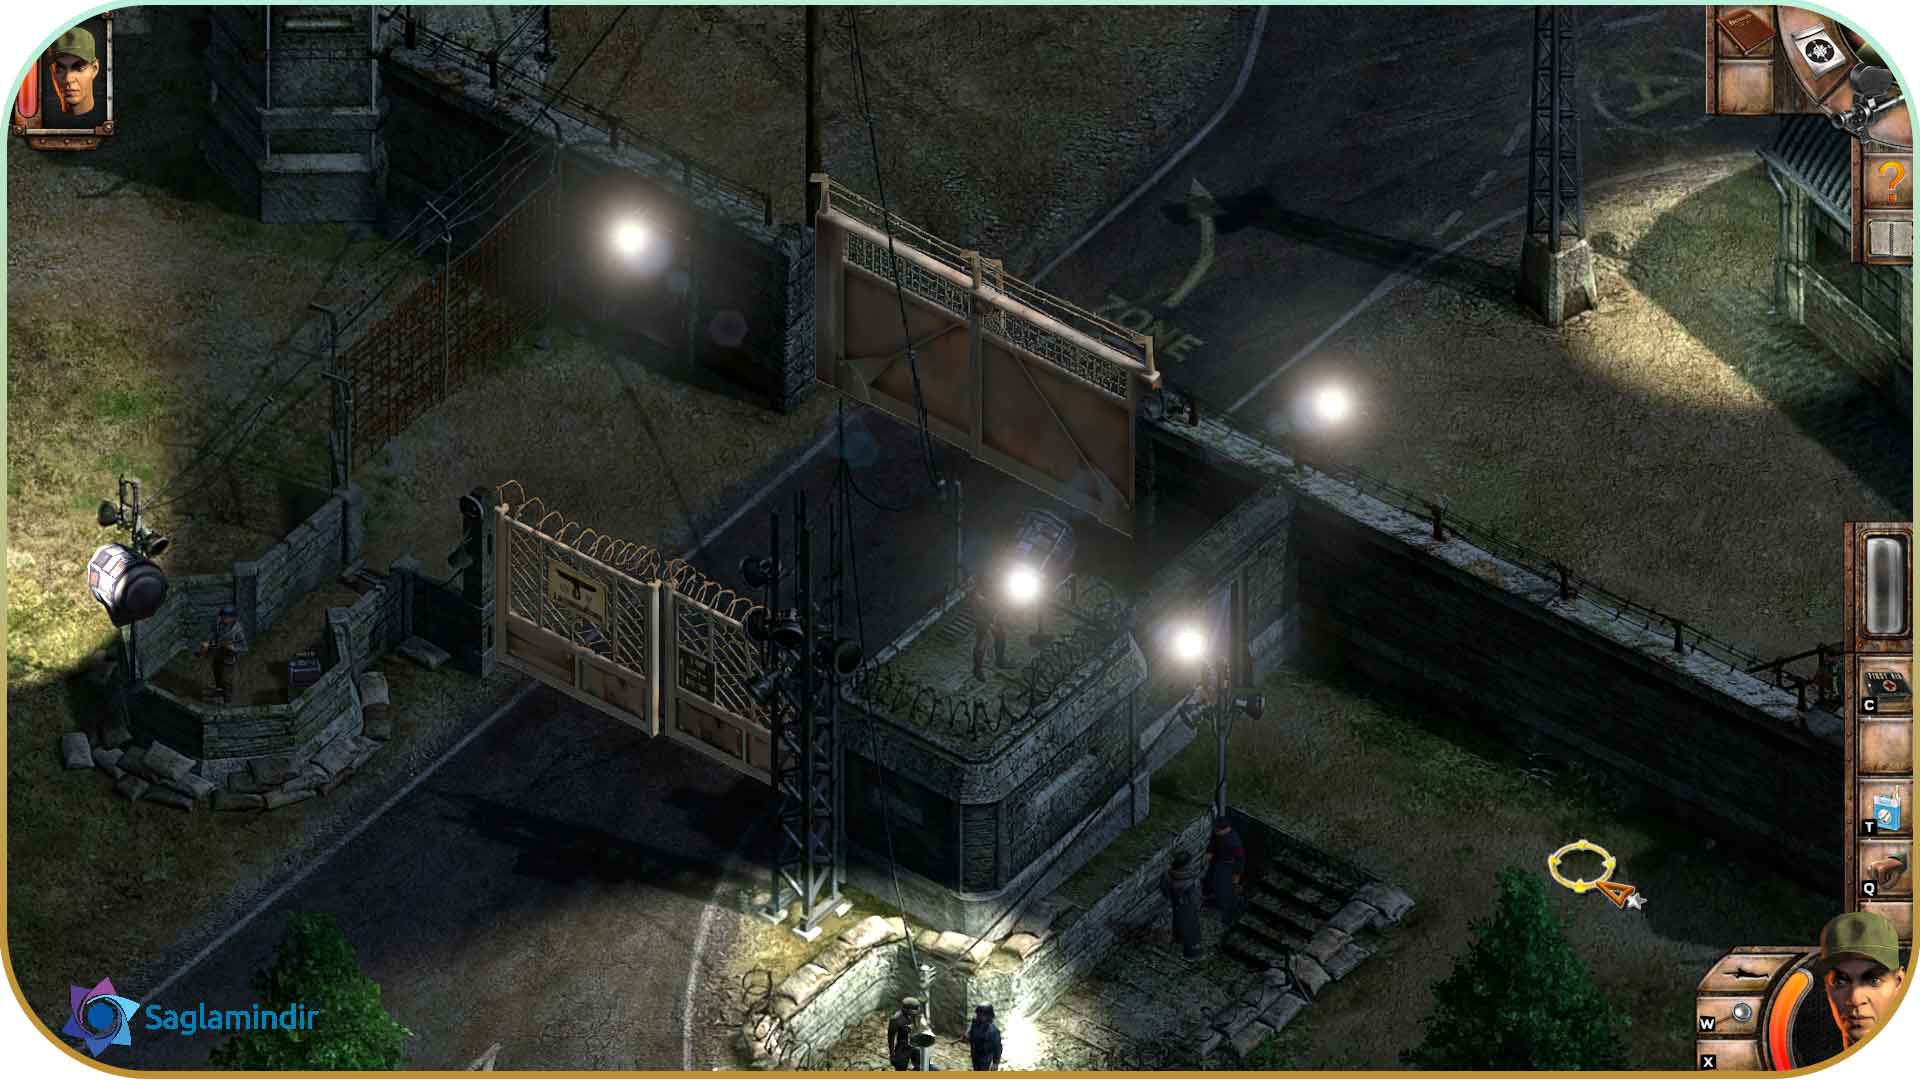 Commandos 2 HD Remaster saglamindir